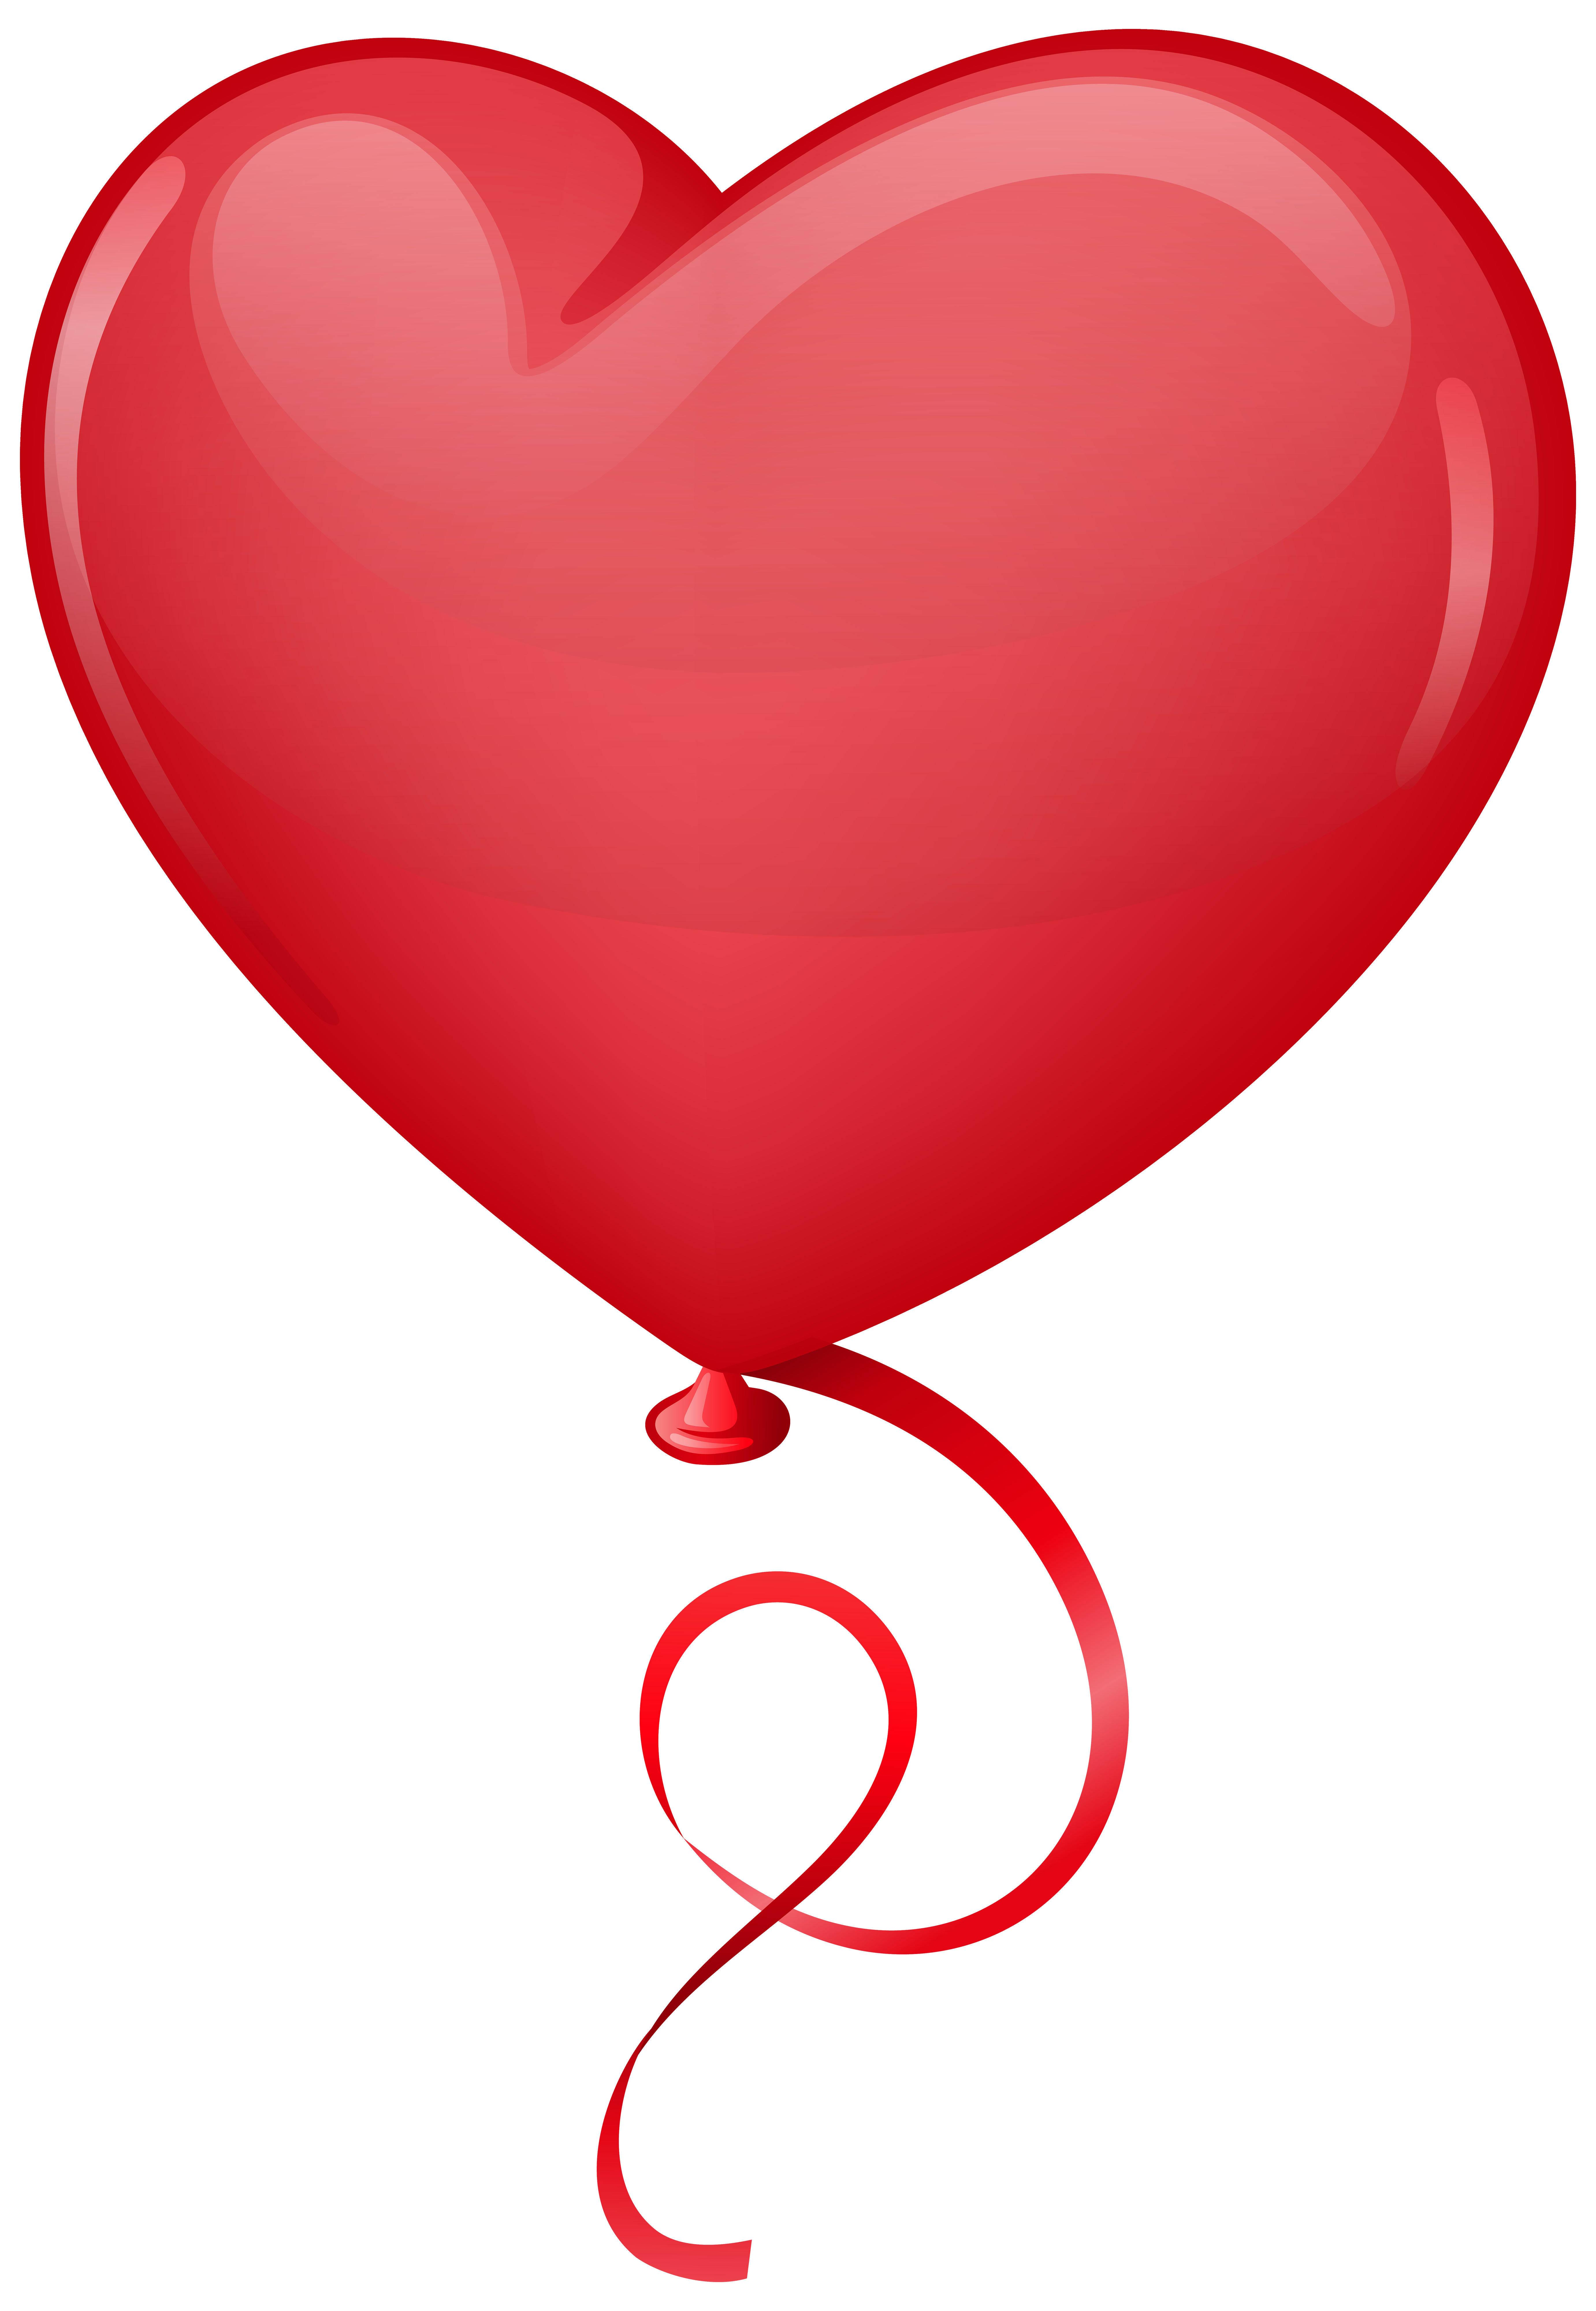 Heart balloons clipart picture transparent library Red Heart Balloon Clip Art PNG Image | Gallery Yopriceville - High ... picture transparent library